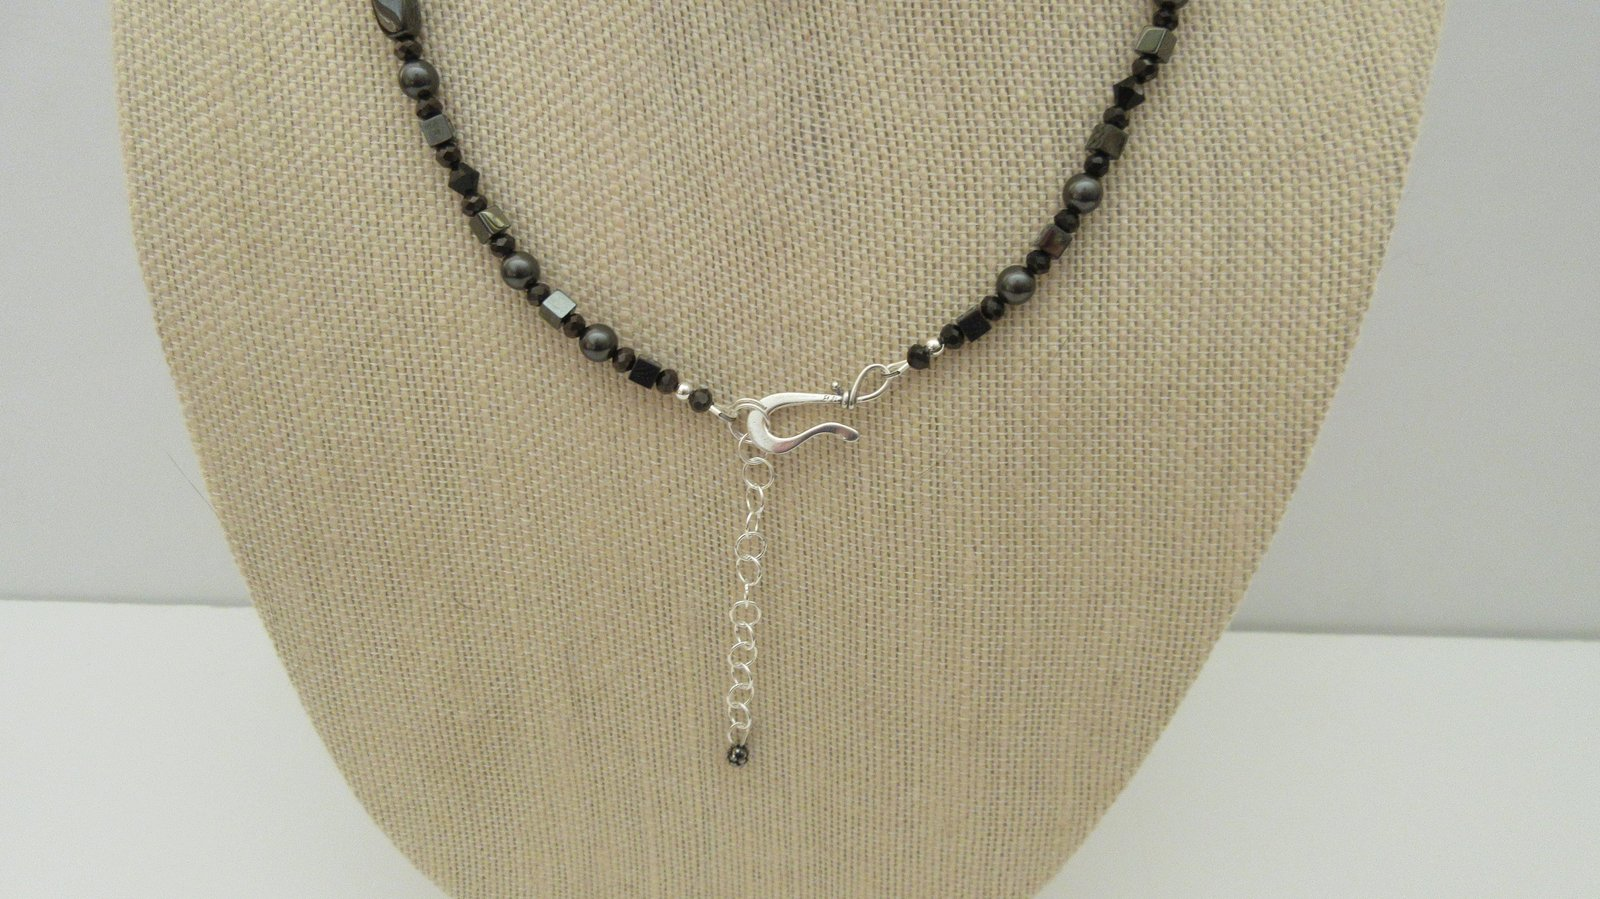 Hematite Arrowhead Pave Pendant Swarovski Necklace Earrings Handmade